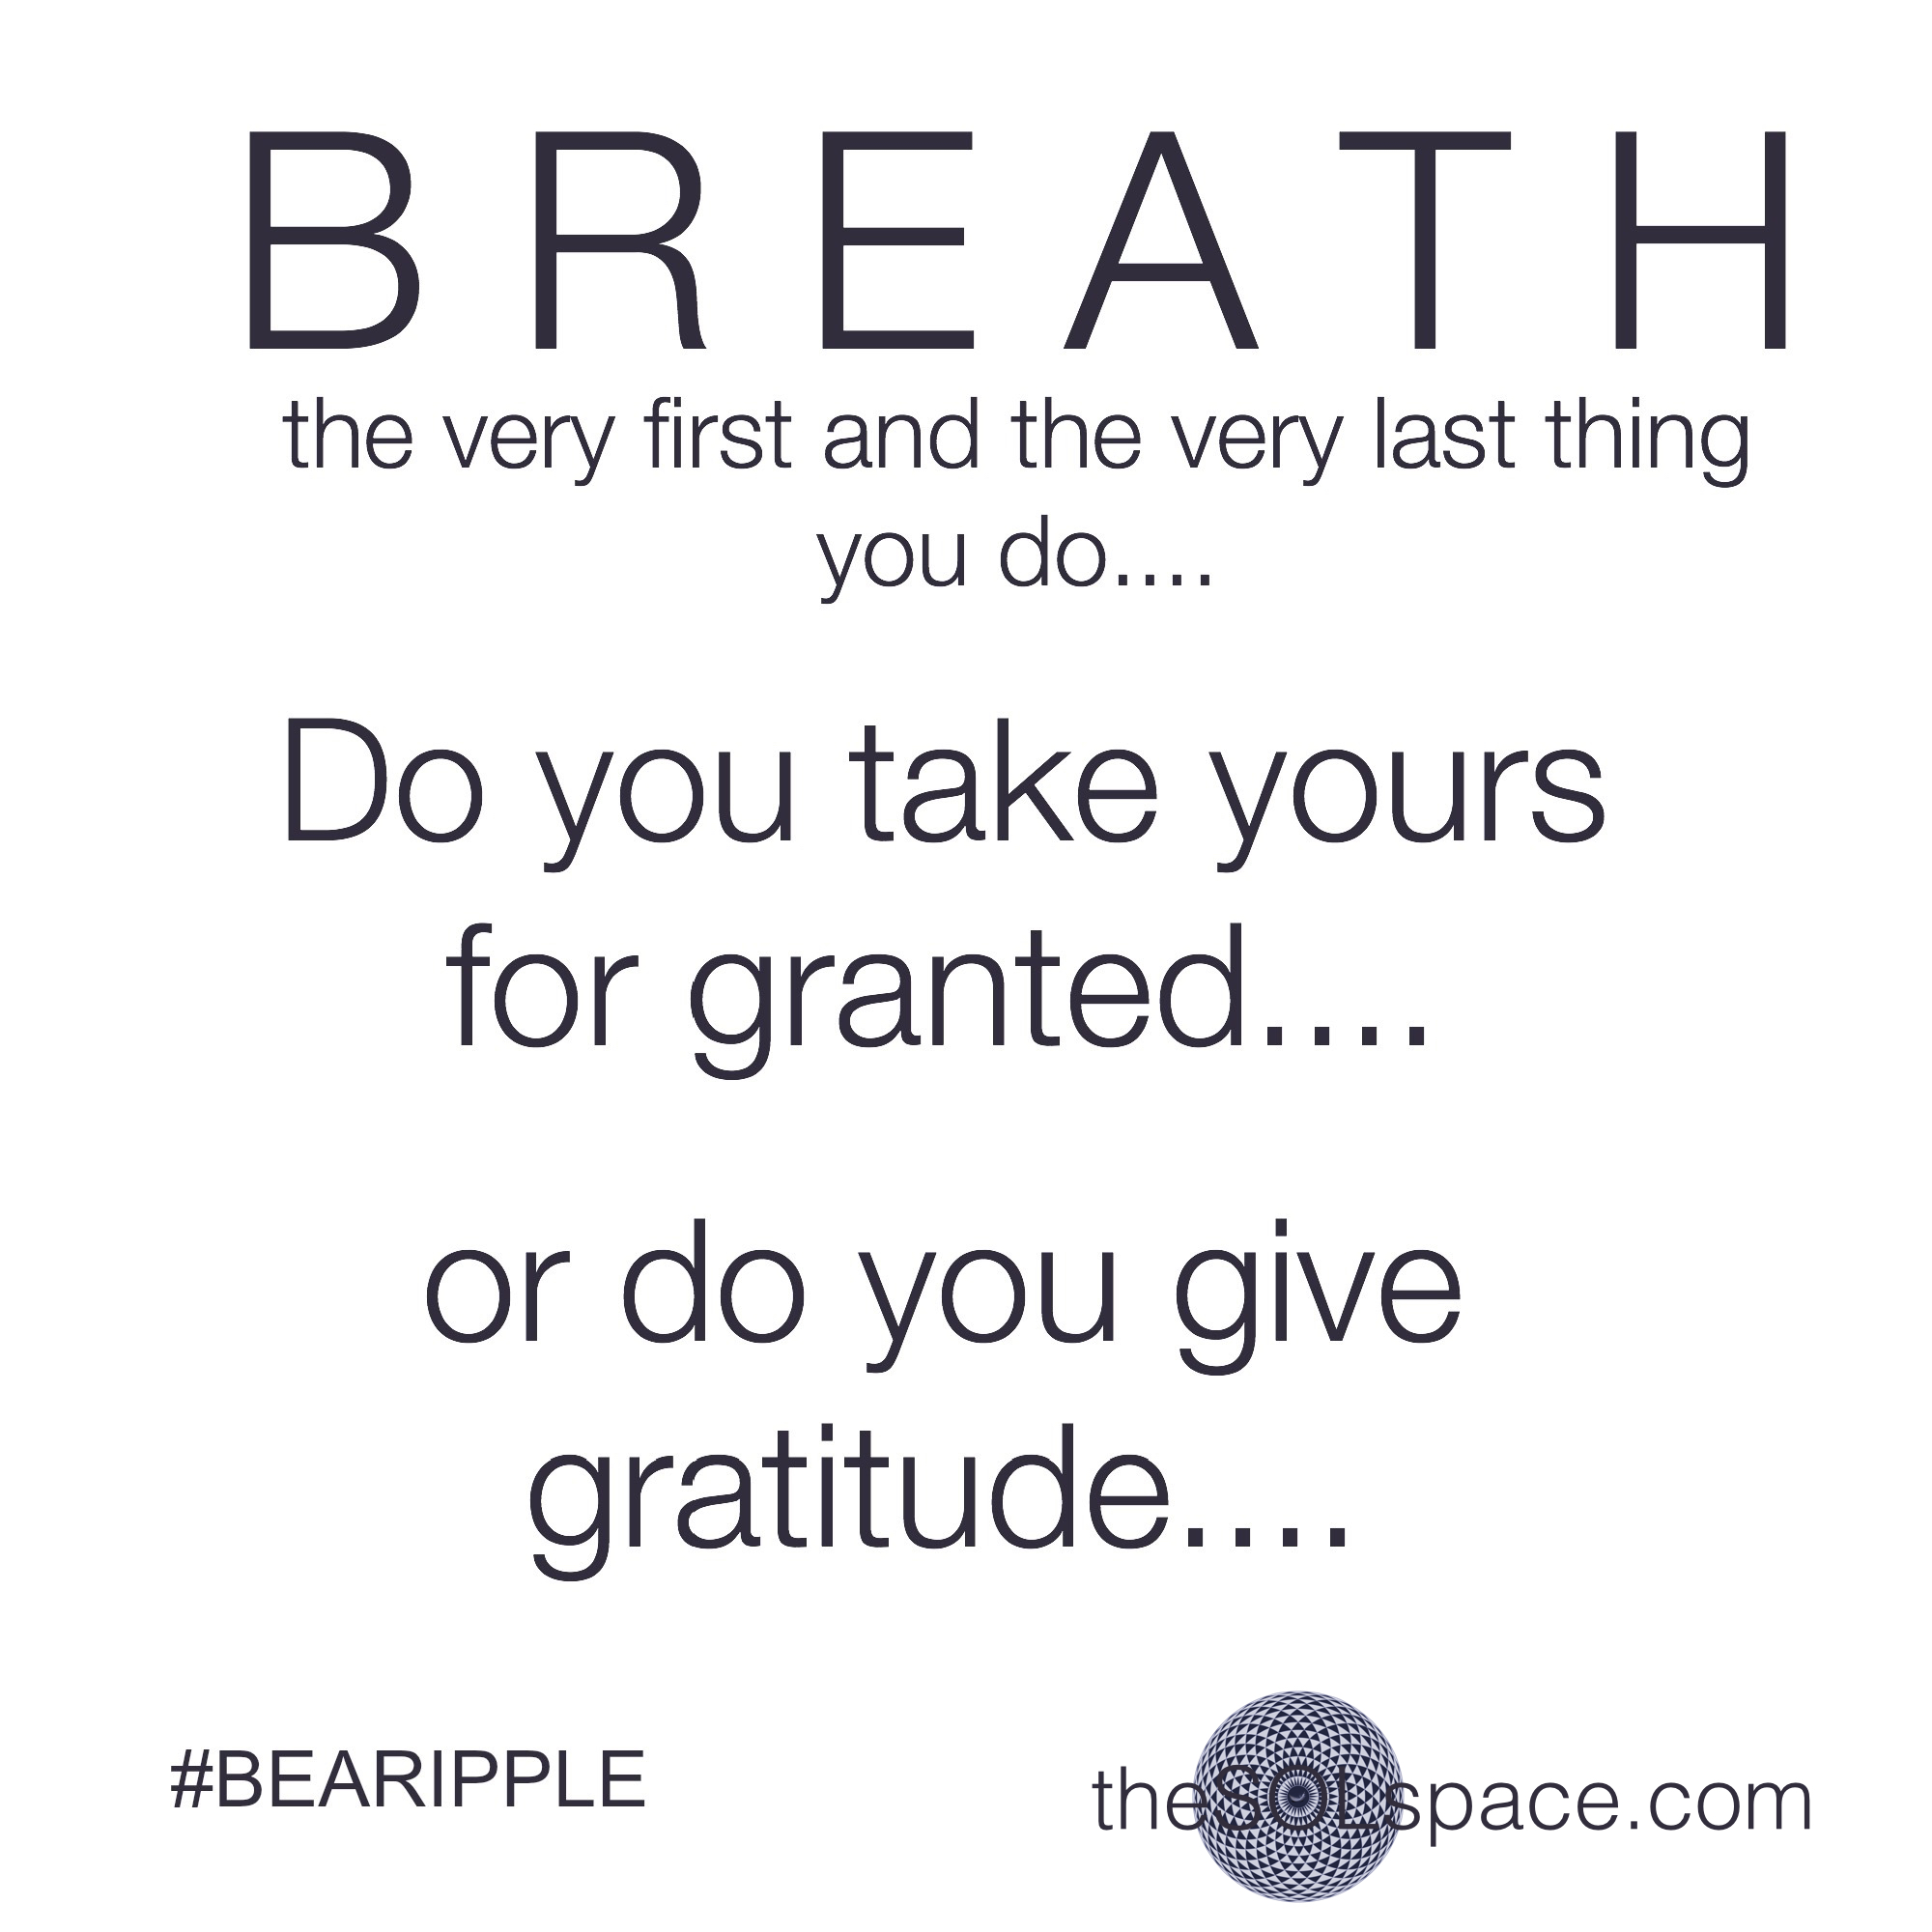 #BeARipple..BREATH the very first and the very last thing you do... @theSOLspace